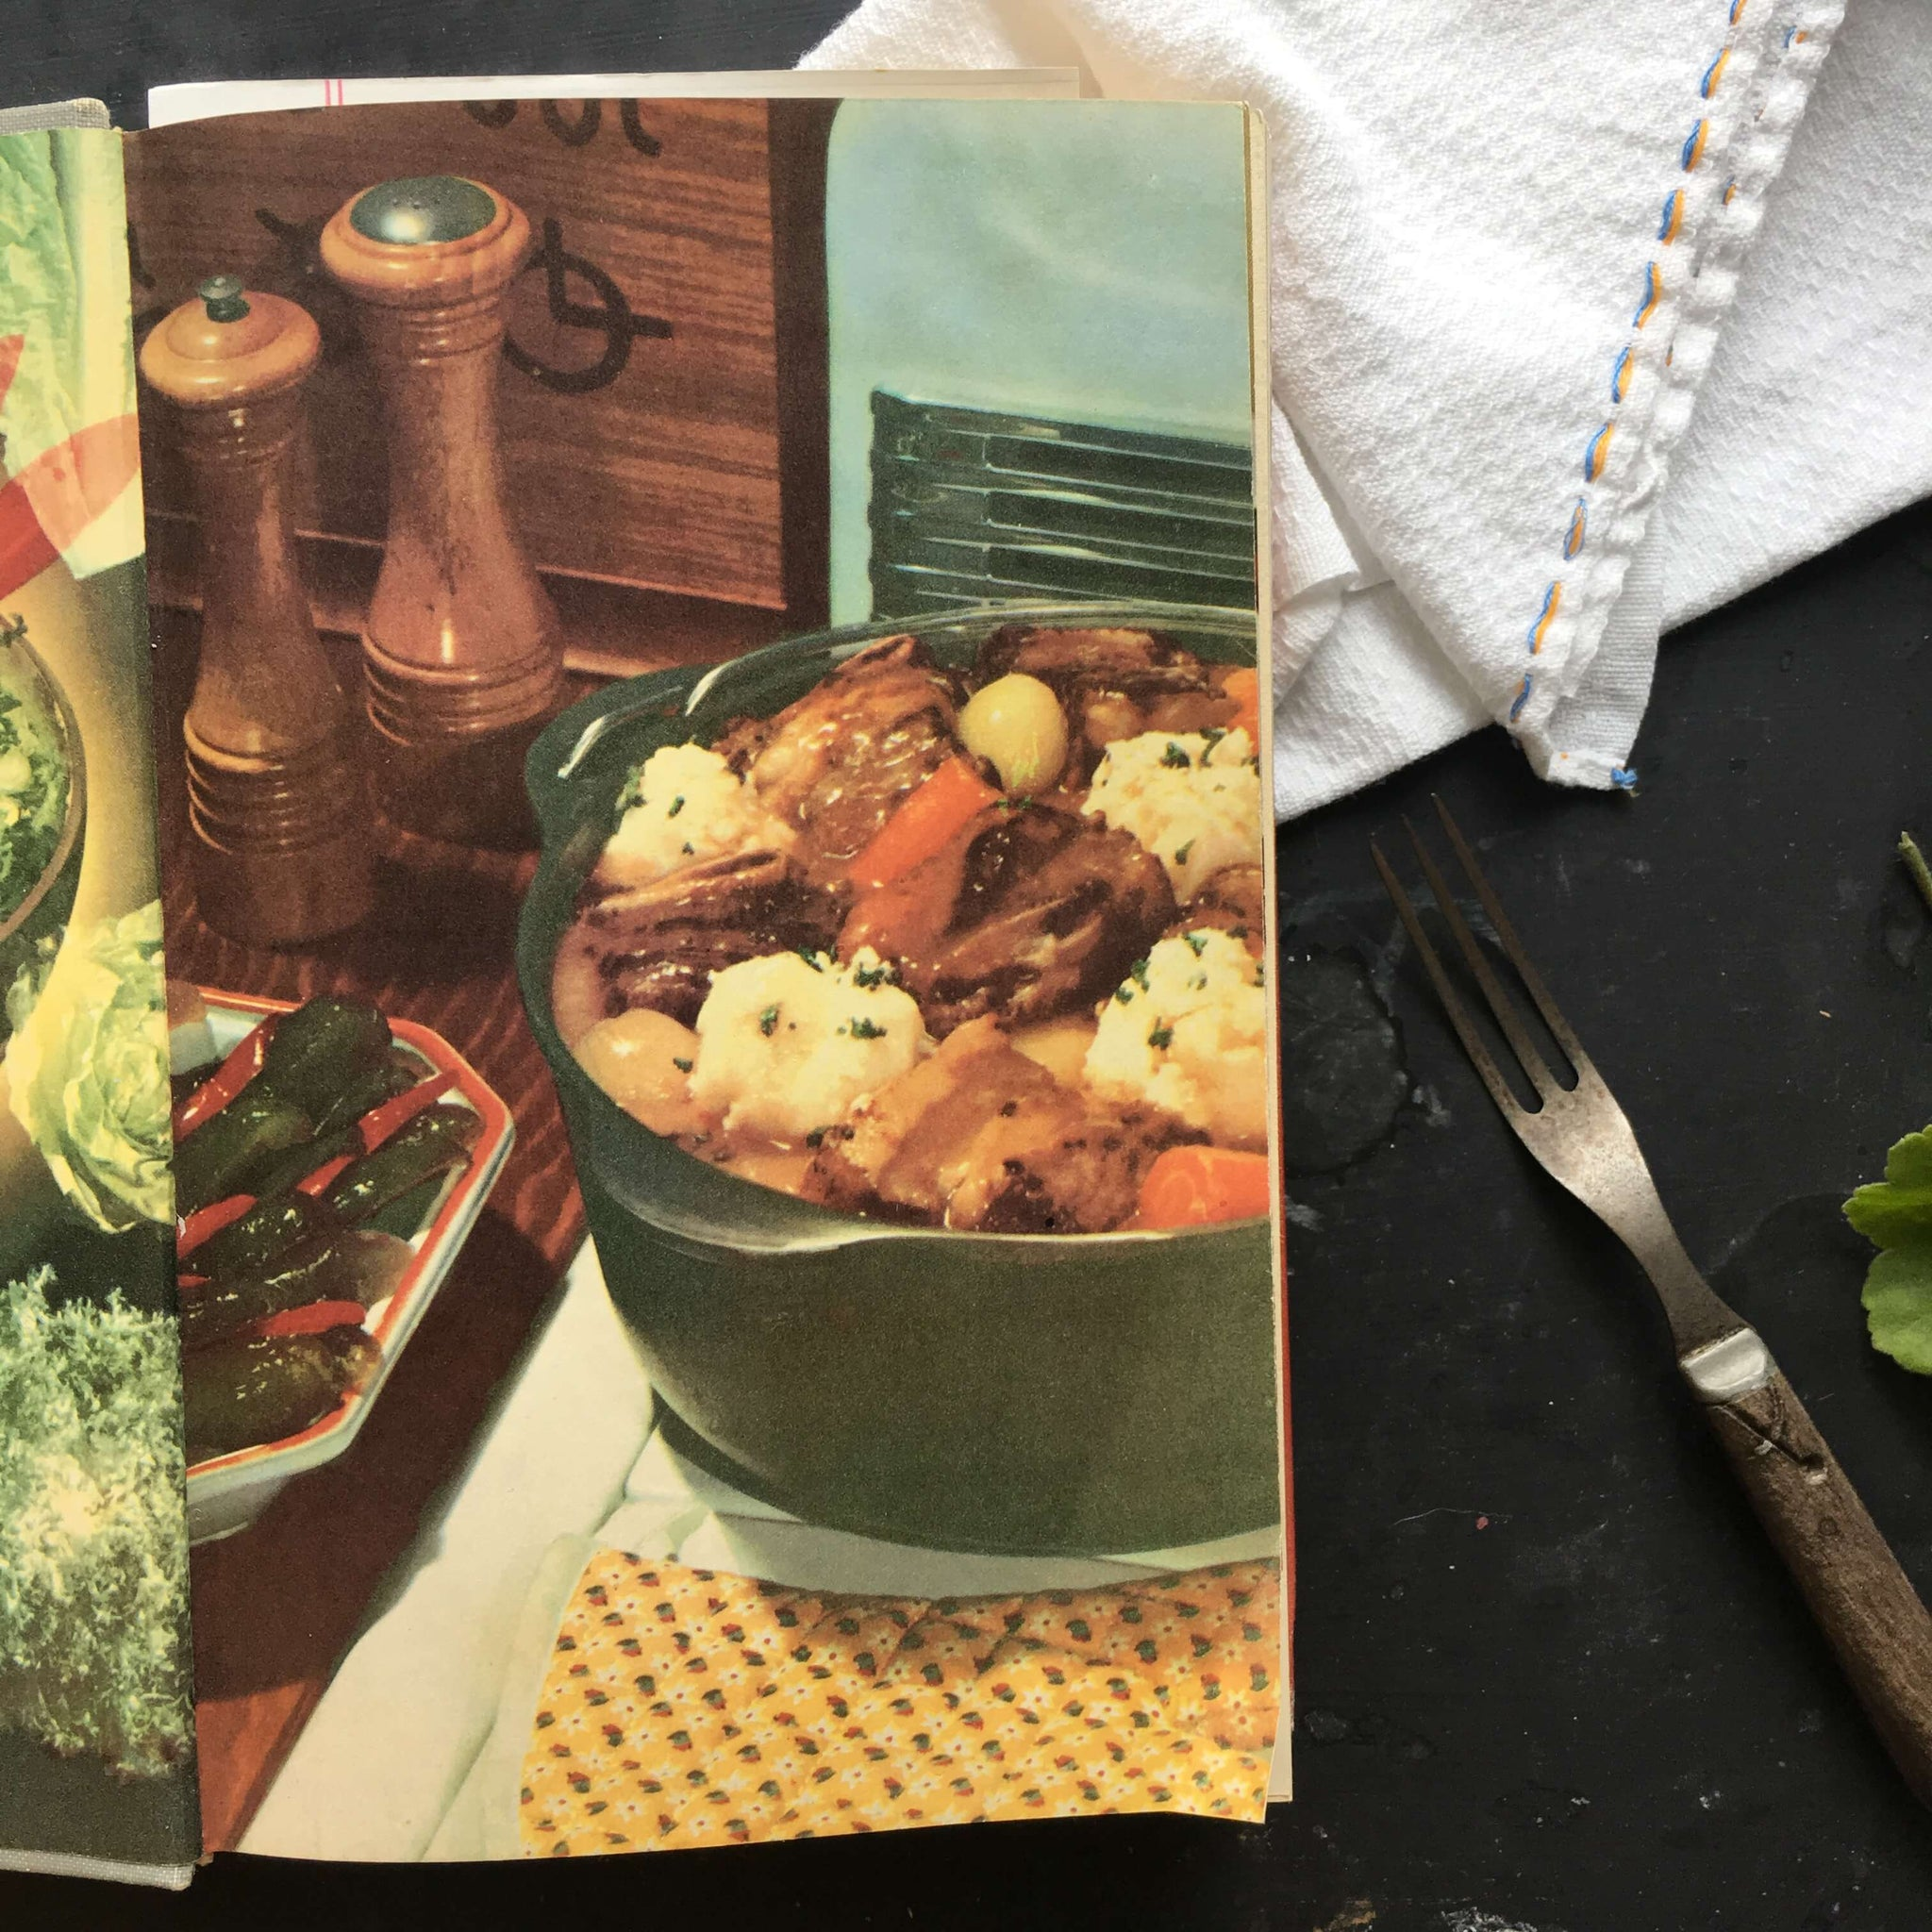 Farm Journal's Country Cookbook - 1959 Edition - Country Farmhouse Recipes